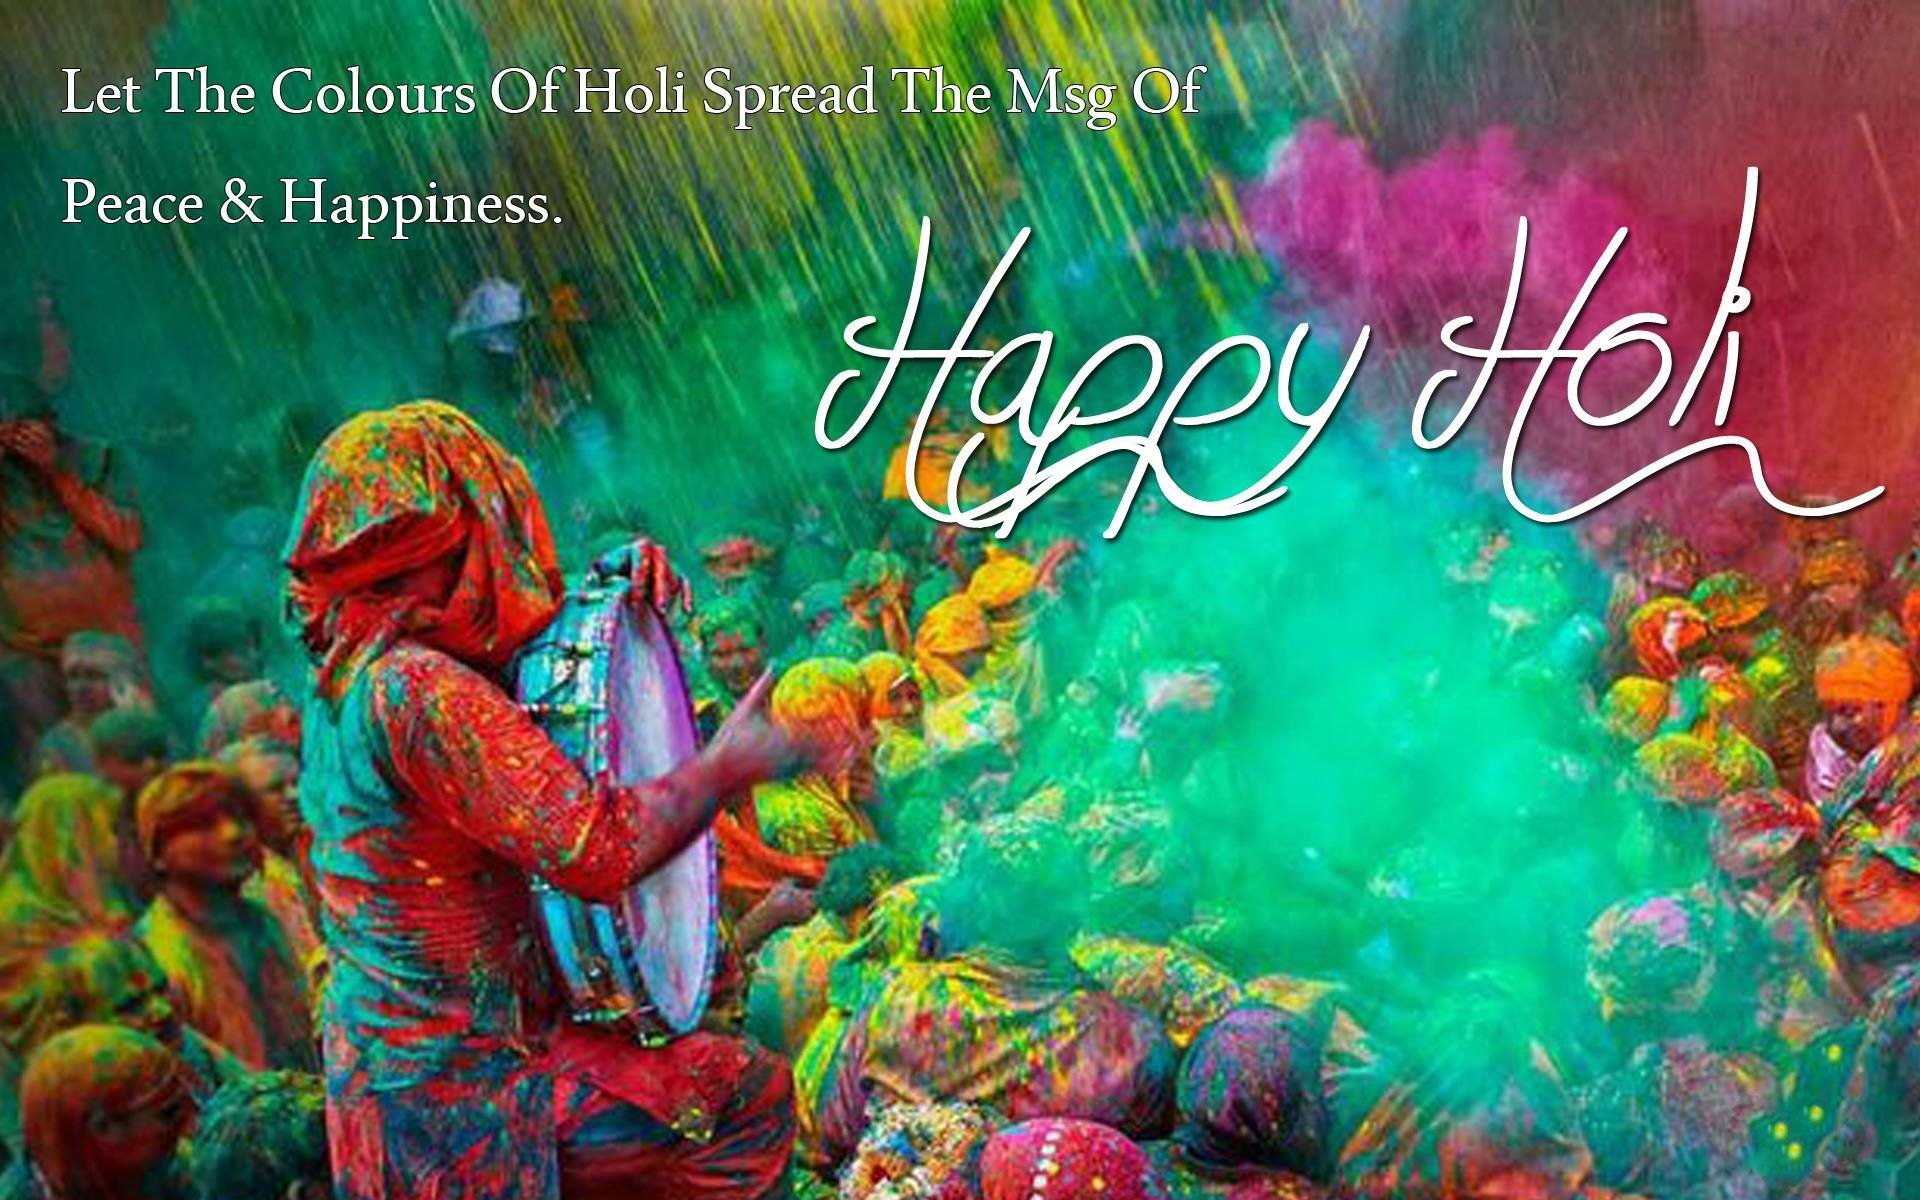 Happy Holi 2019 Images Quotes Wishes Greetings Messages 1920x1200